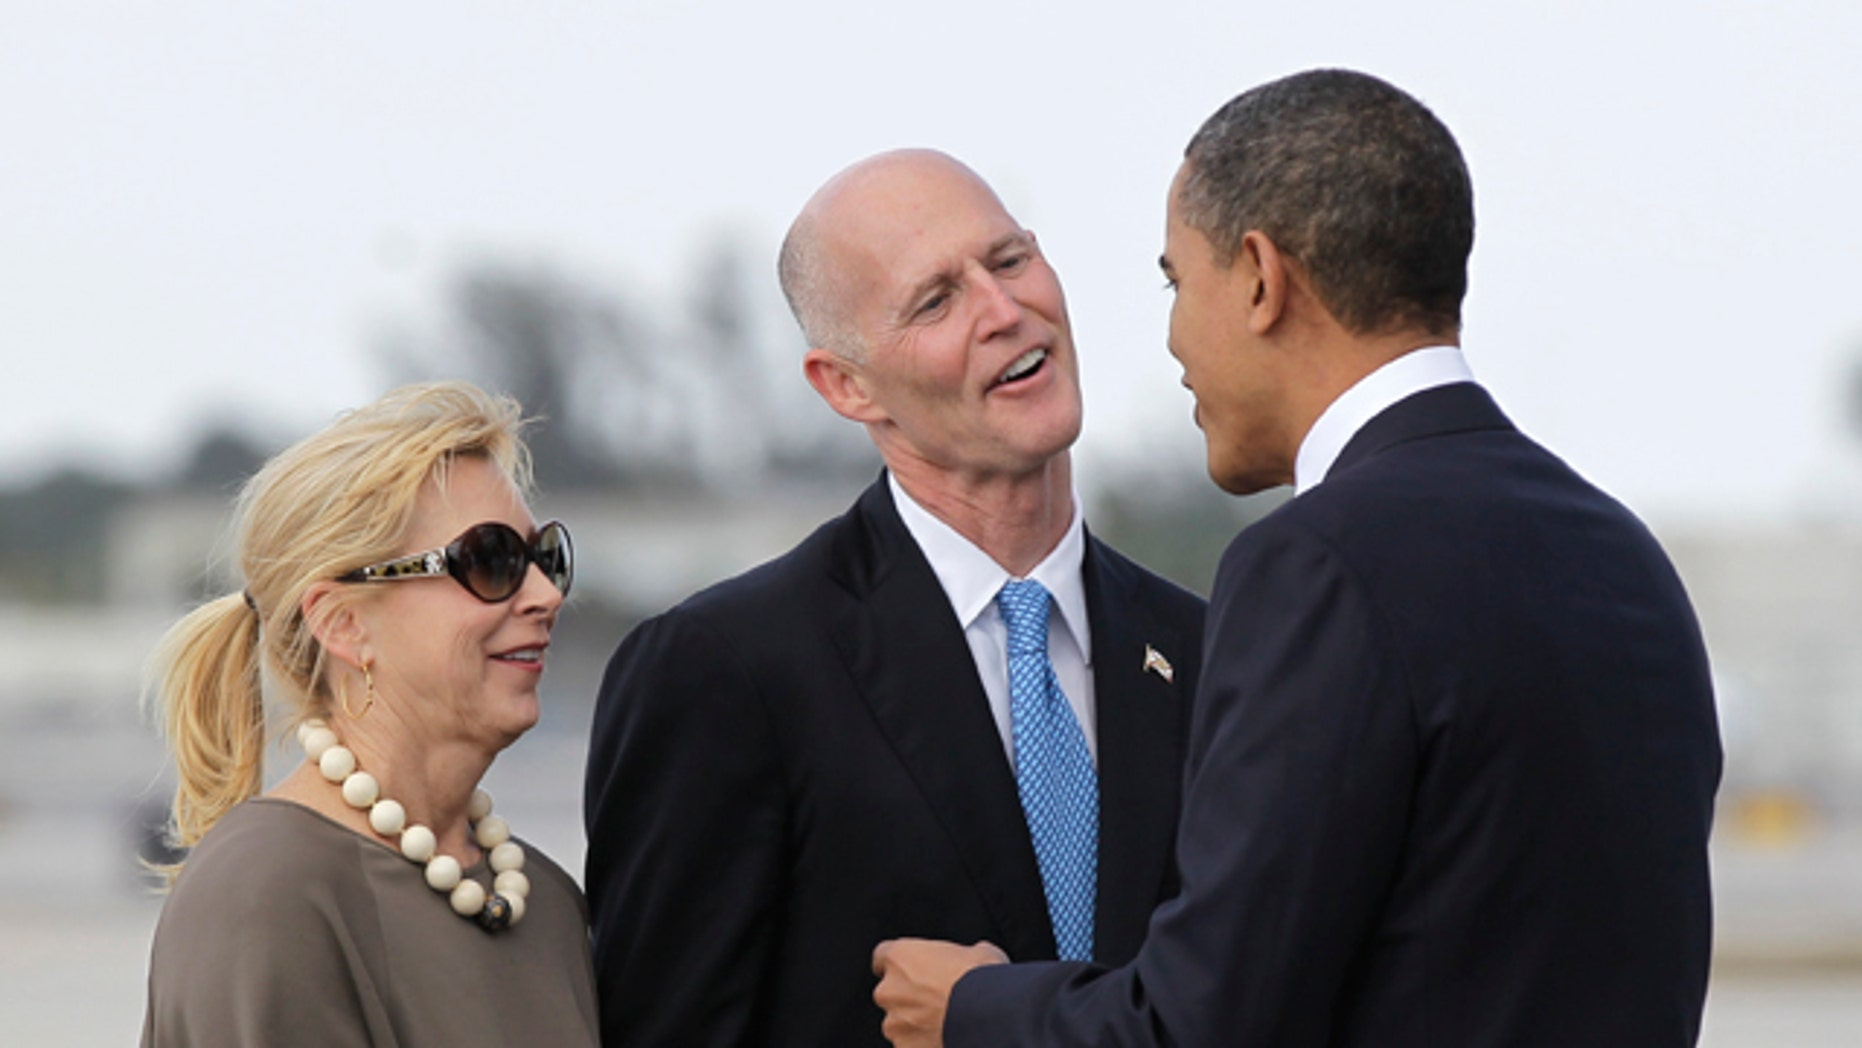 March 4: Obama is greeted by Florida Gov. Rick Scott and his wife Ann upon his arrival to Miami International Airport. U.S. Transportation Secretary Ray LaHood announced March 4 that $2.4 billion in high-speed rail funding intended for Florida will be sent to other states after the state Supreme Court upheld Gov. Rick Scott's decision to reject the money.